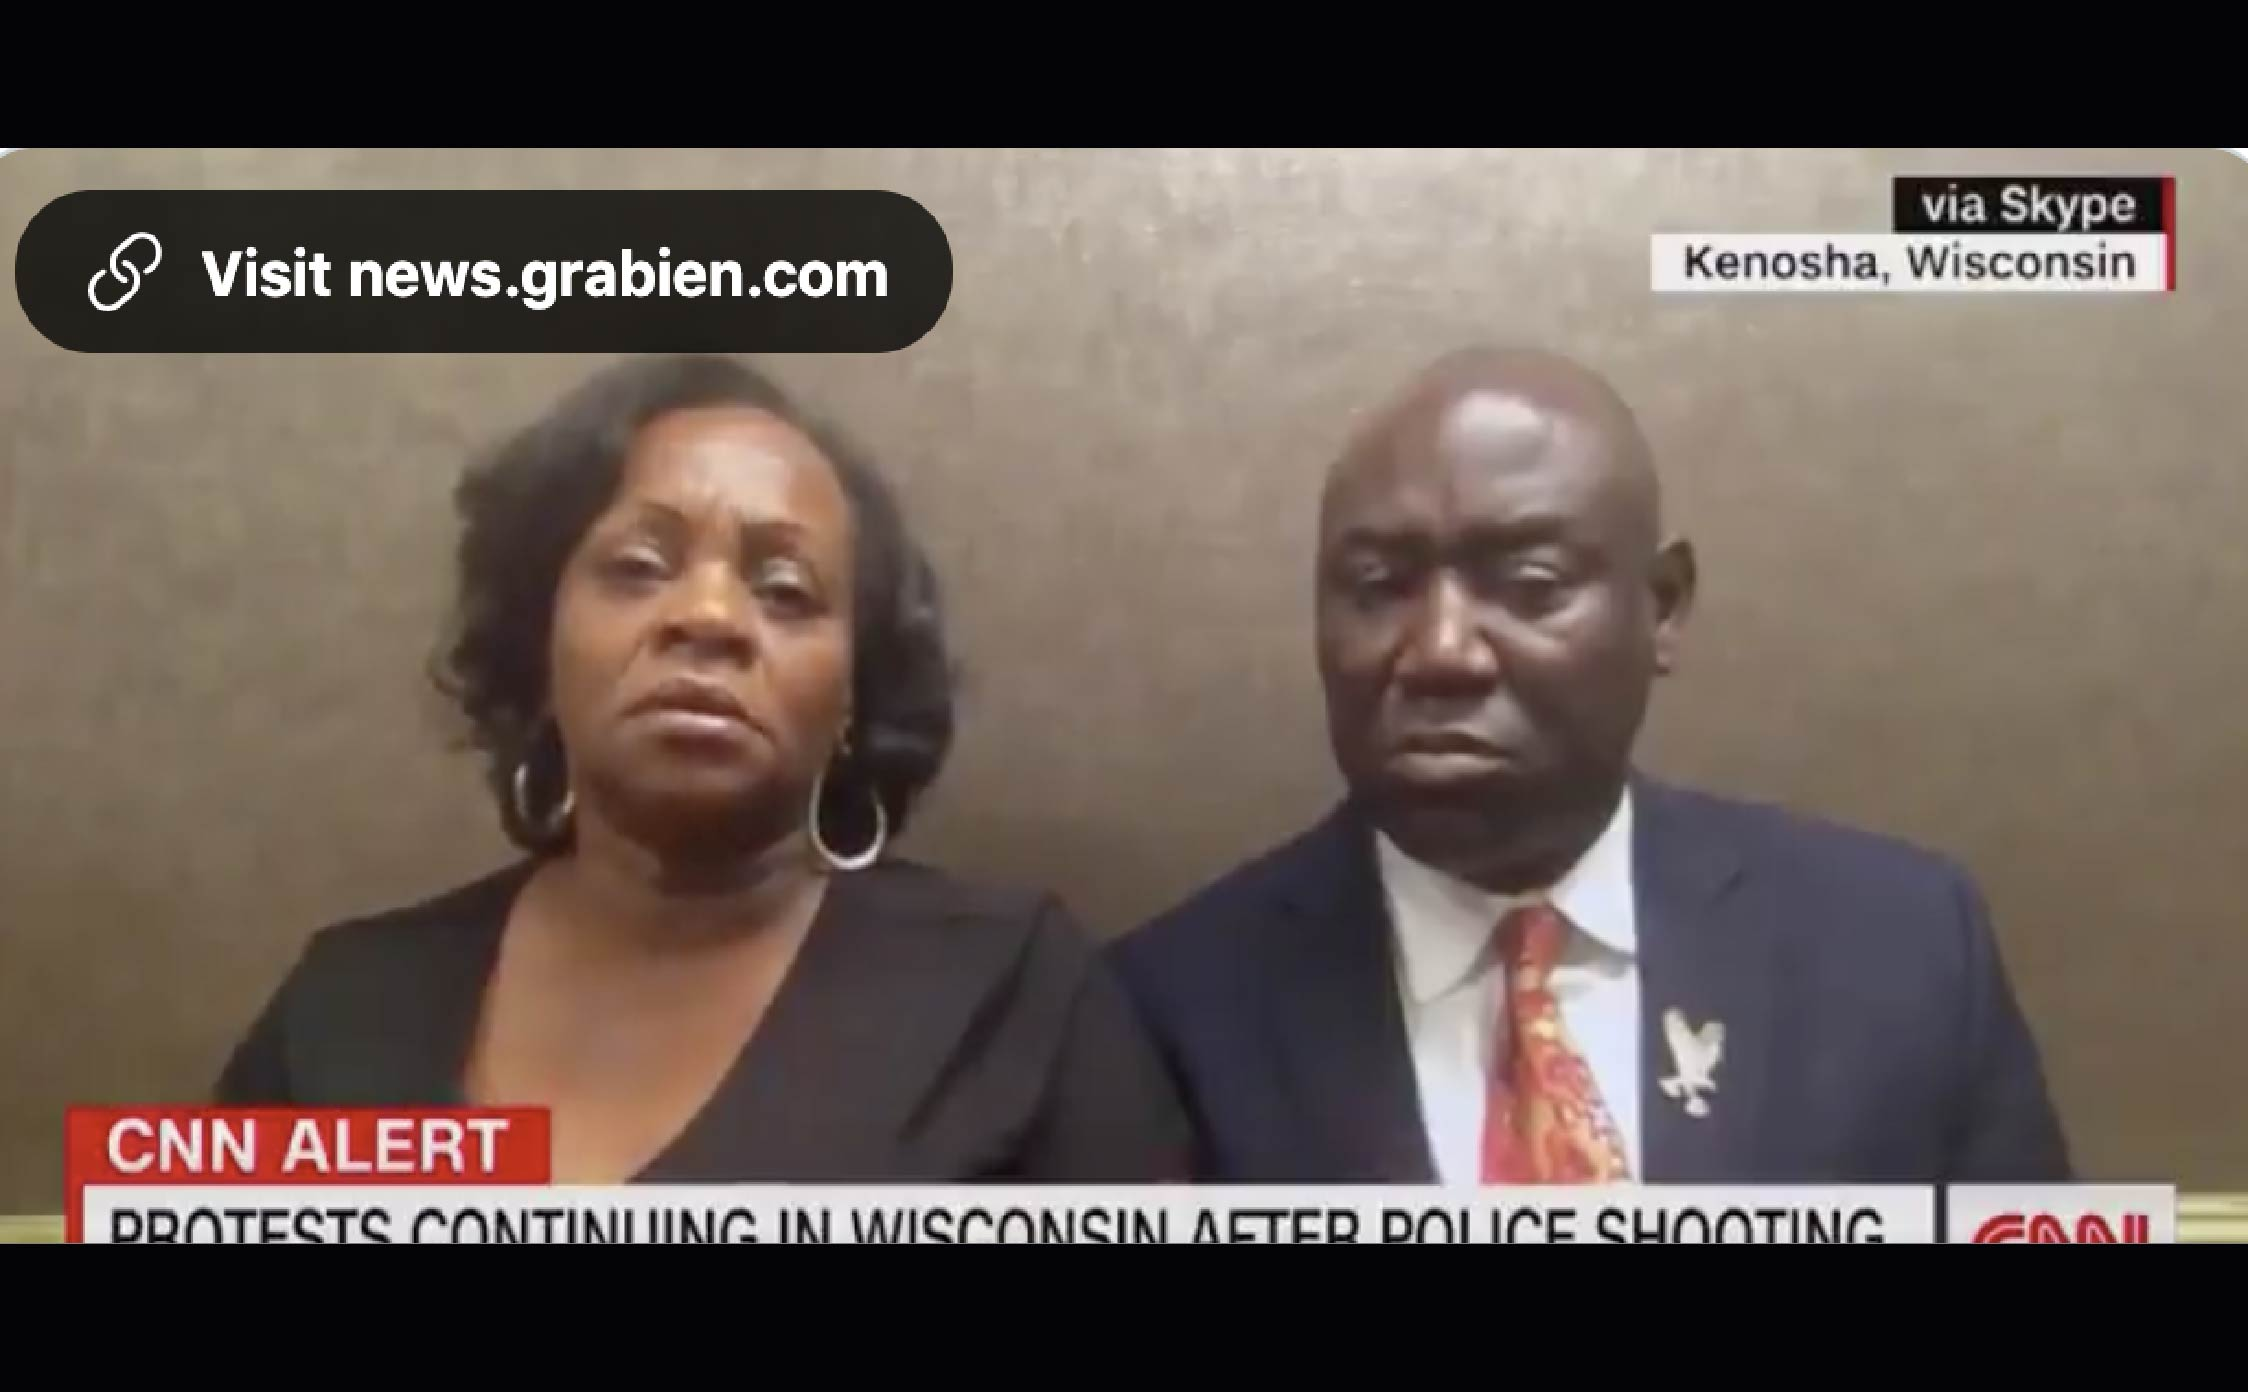 [VIDEO] Mother of Jacob Blake Apologizes to Trump, Says She Has Respect For Him as Our Country's Leader